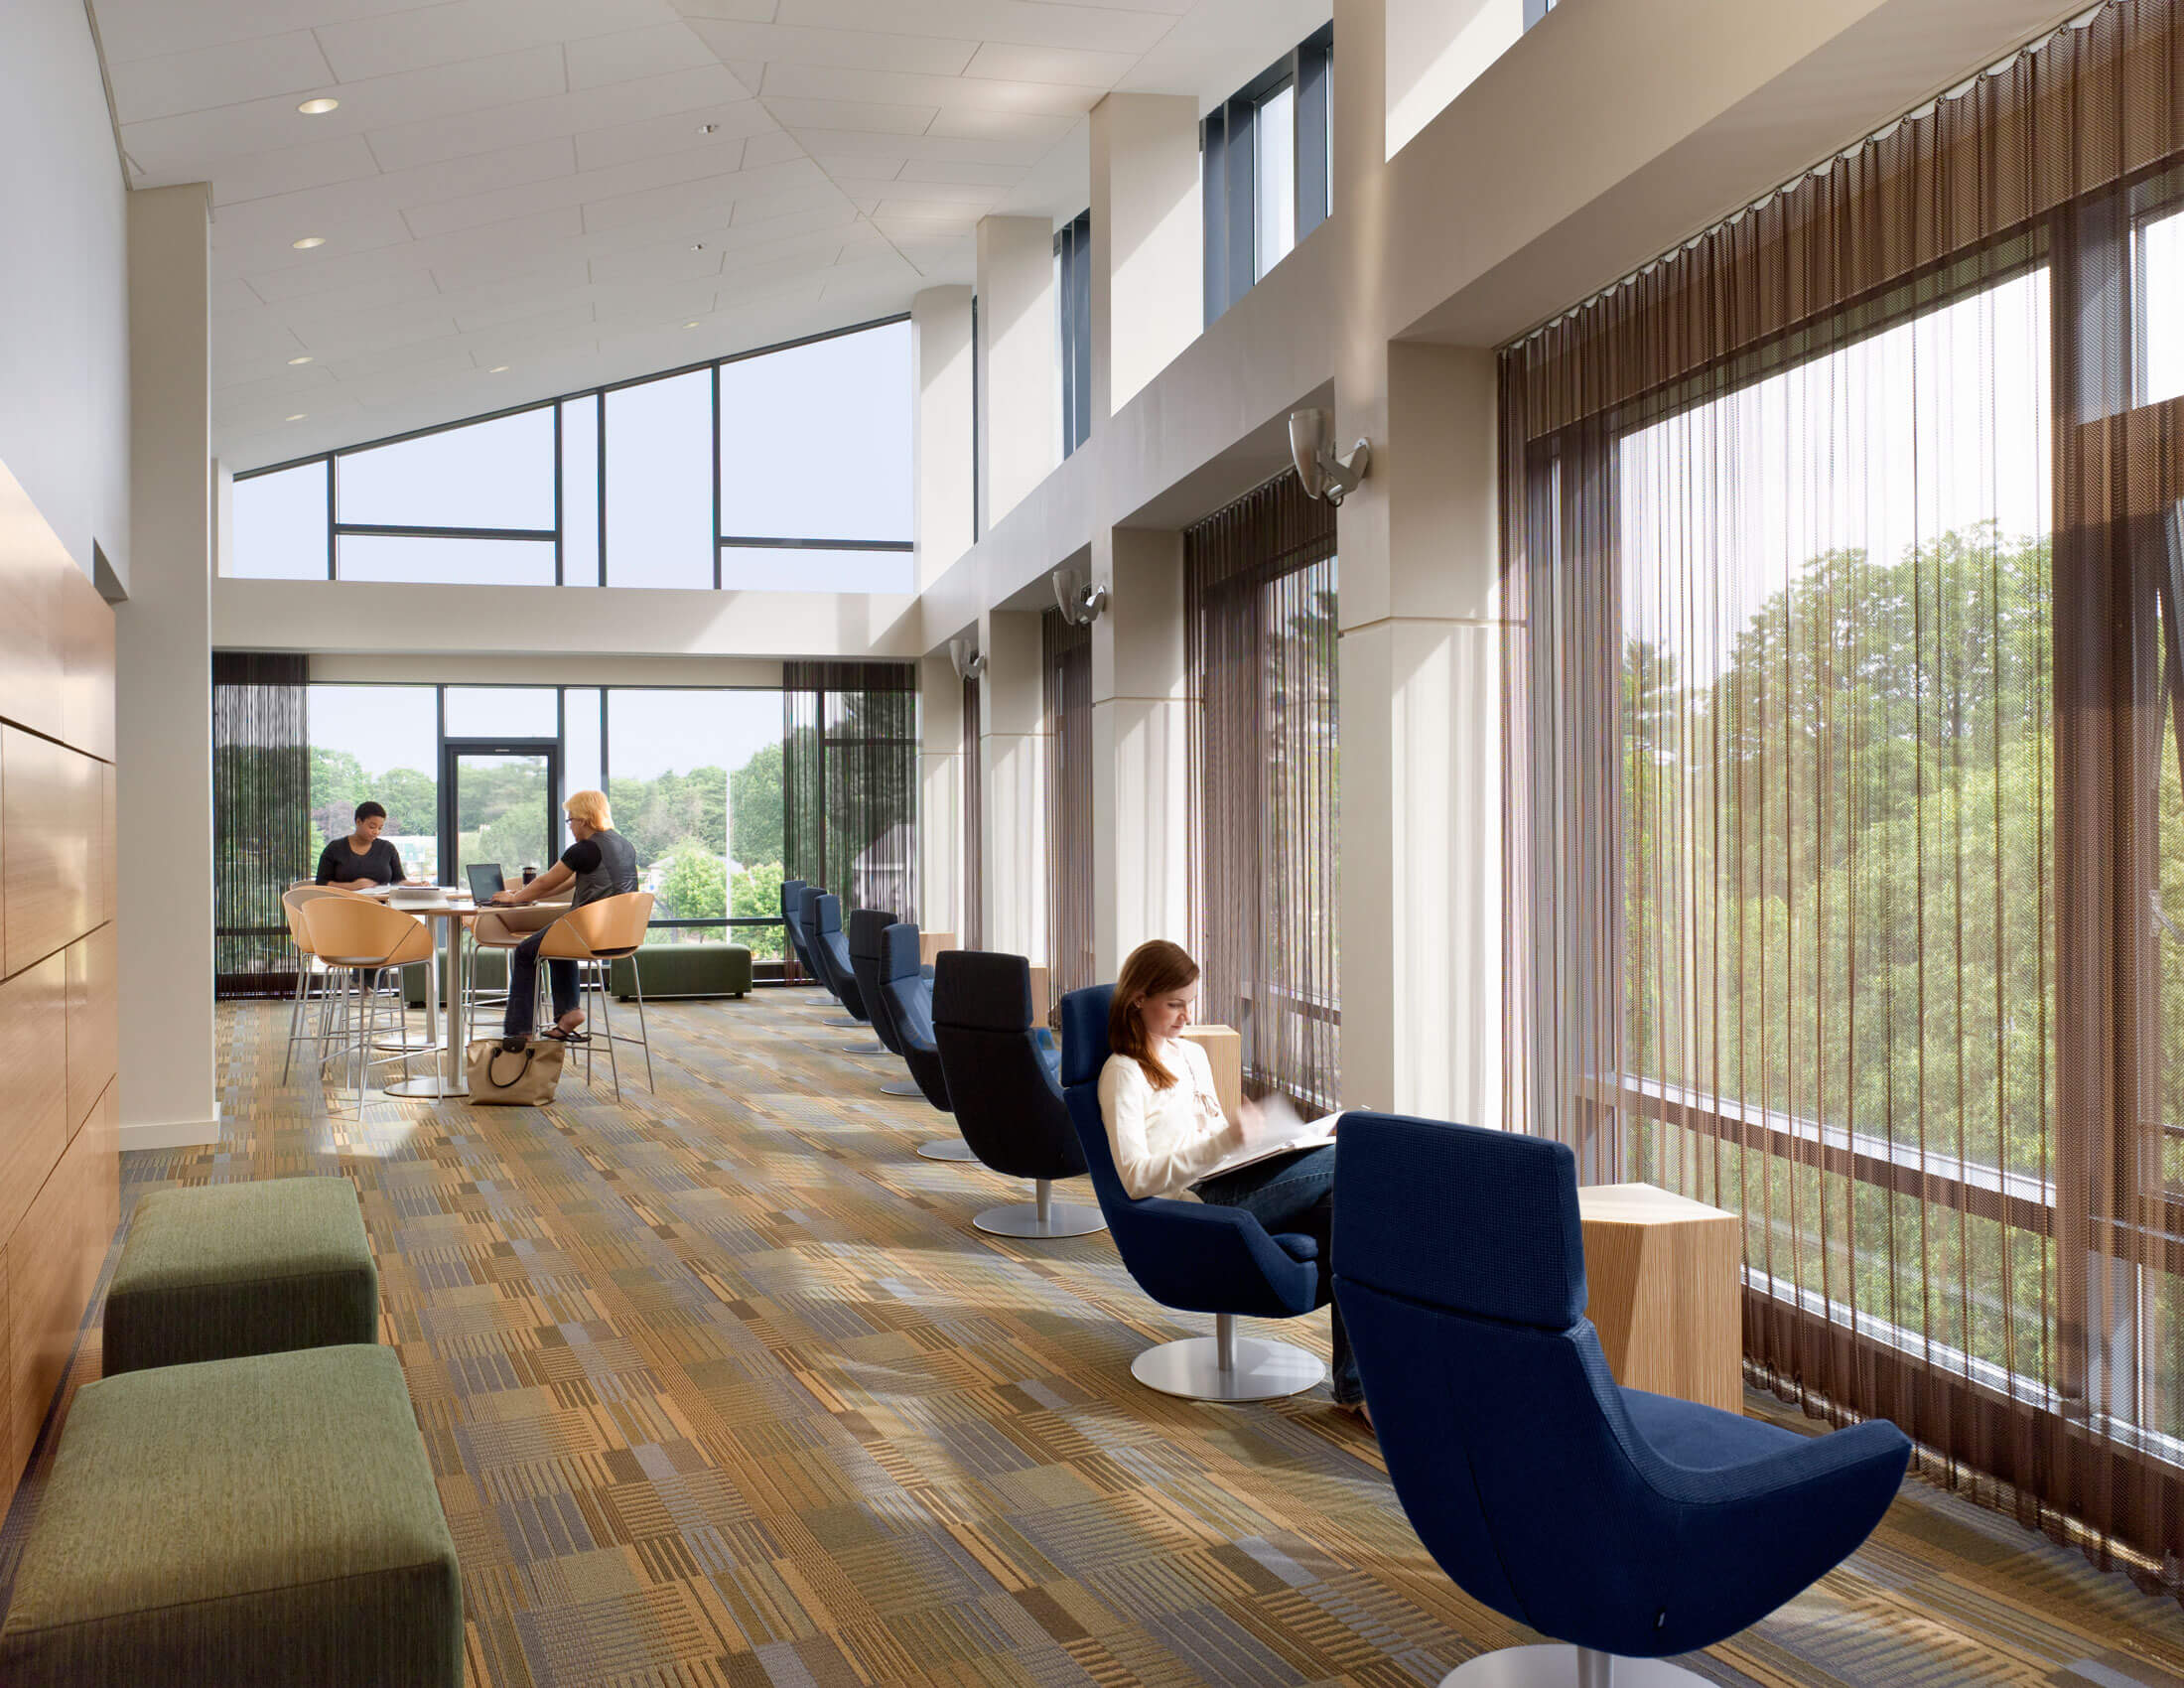 Students scattered in a variety of seating options to study or talk, in front of large windows under a sloping ceiling.